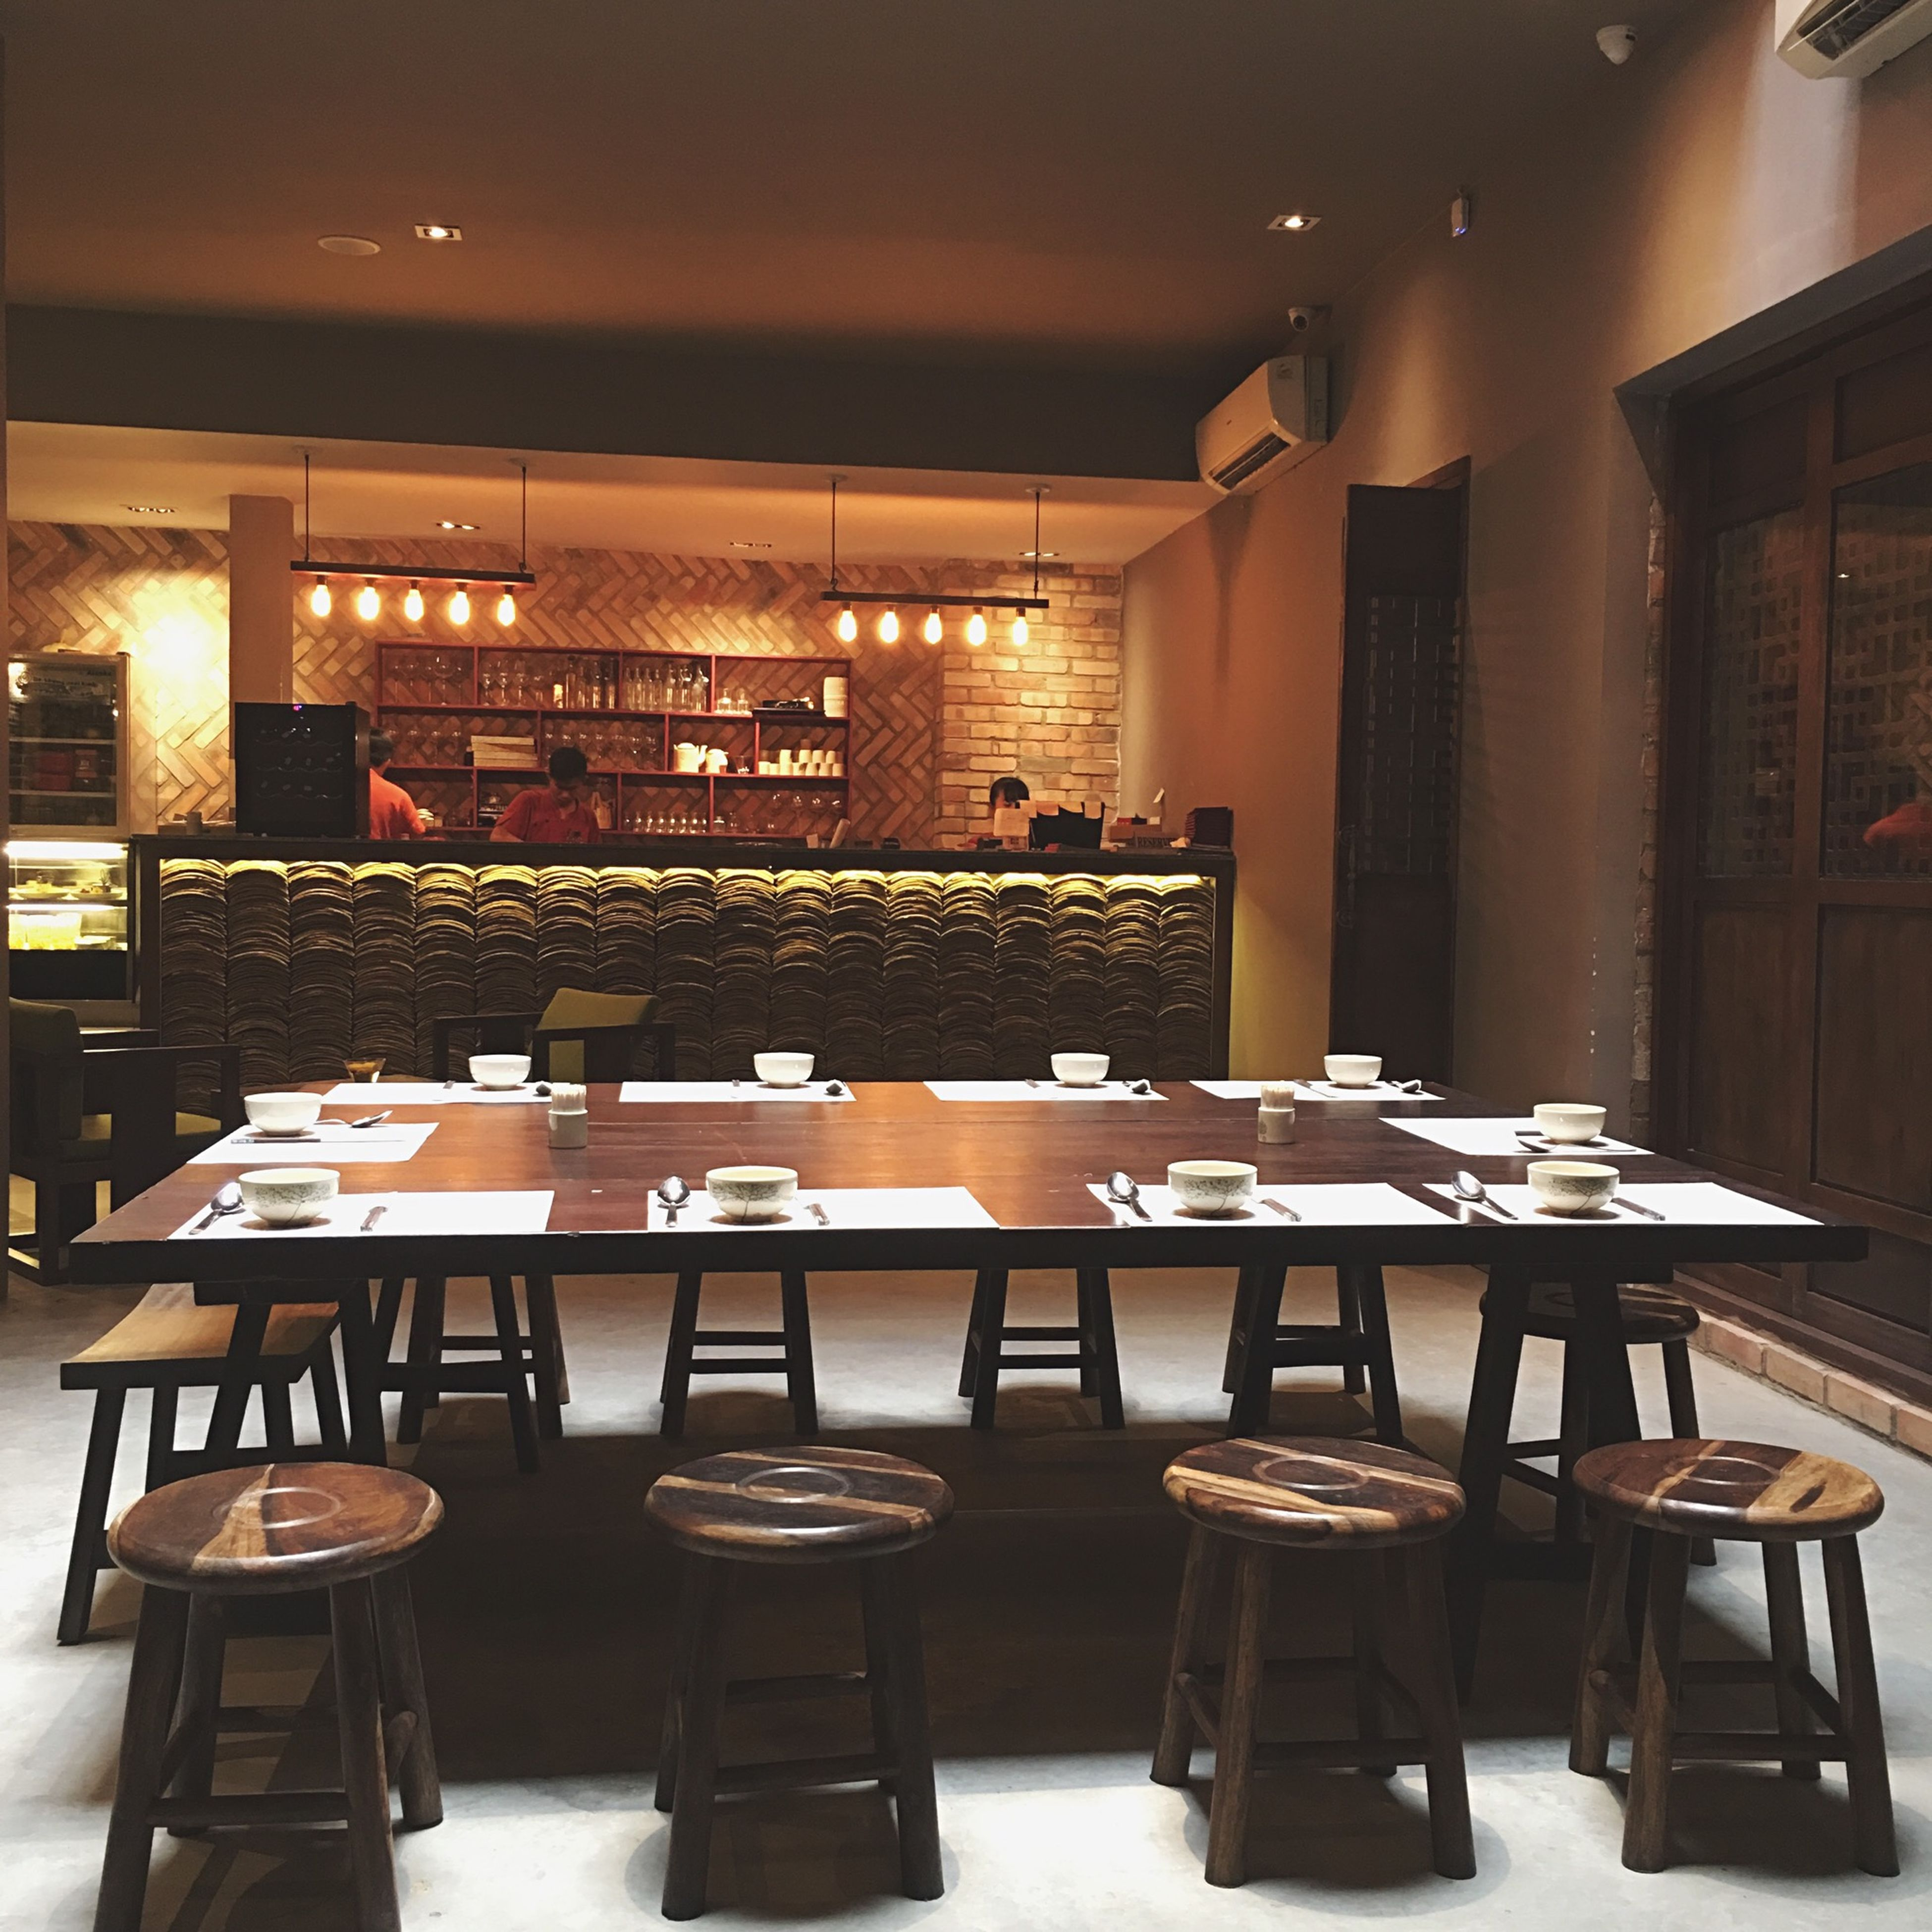 indoors, chair, empty, table, absence, illuminated, restaurant, architecture, built structure, window, lighting equipment, furniture, flooring, home interior, place setting, no people, dining table, interior, room, seat